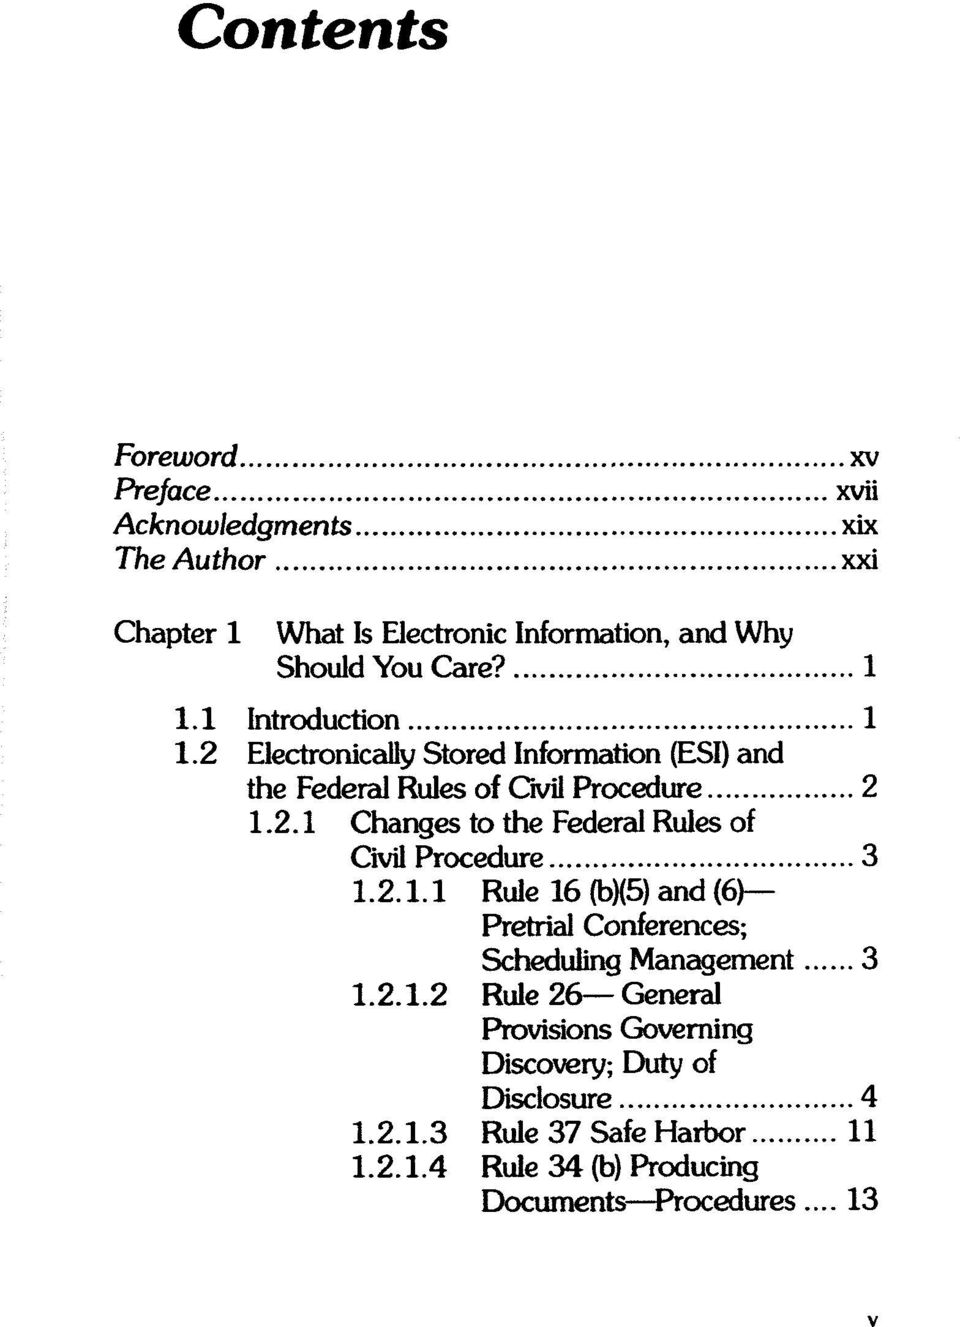 Electronically Stored Information (ESI) and the Federal Rules of Civil Procedure 2